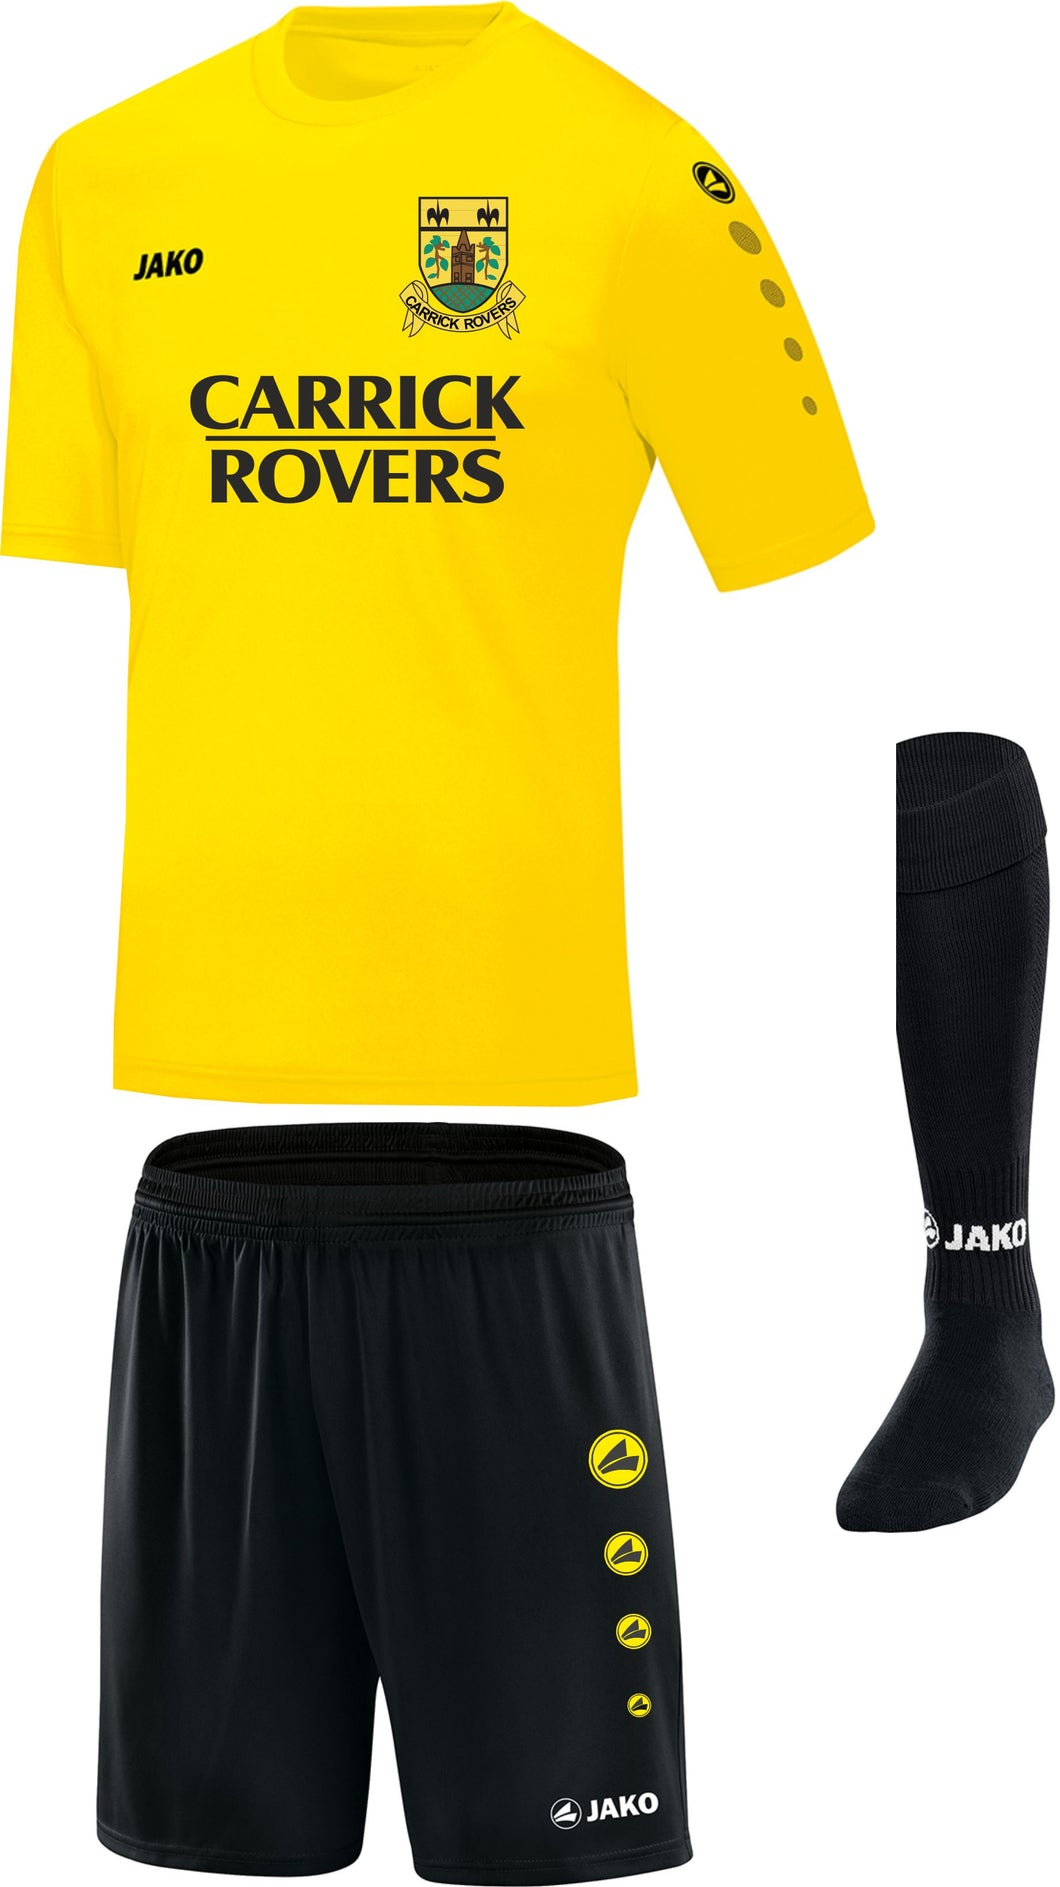 Adult JAKO Carrick Rovers Player Pack CR1111